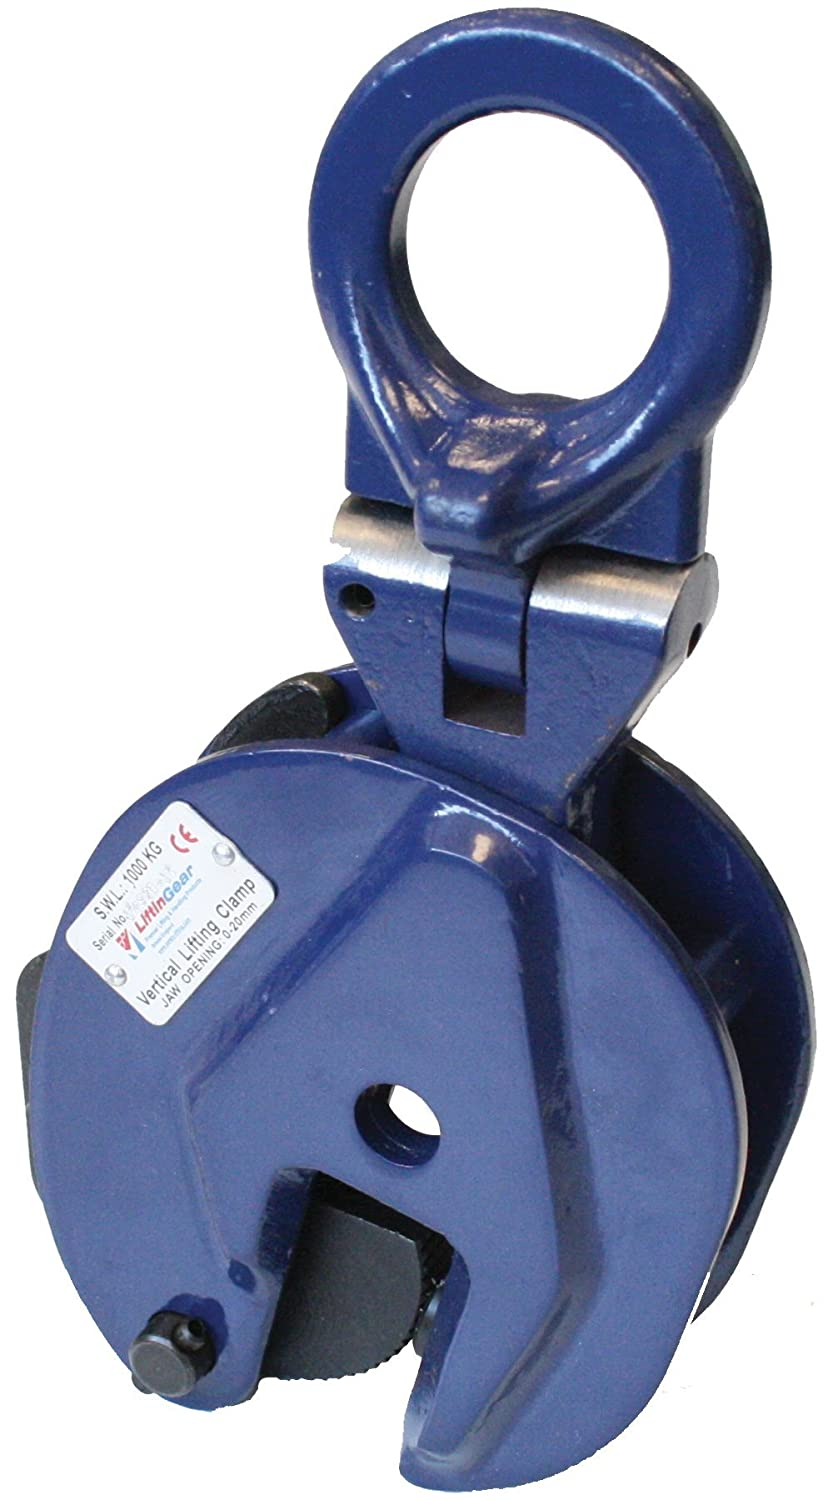 LiftinGear 0.5 tonne Vertical Lifting Plate Clamp 0-15mm SafetyLiftinGear